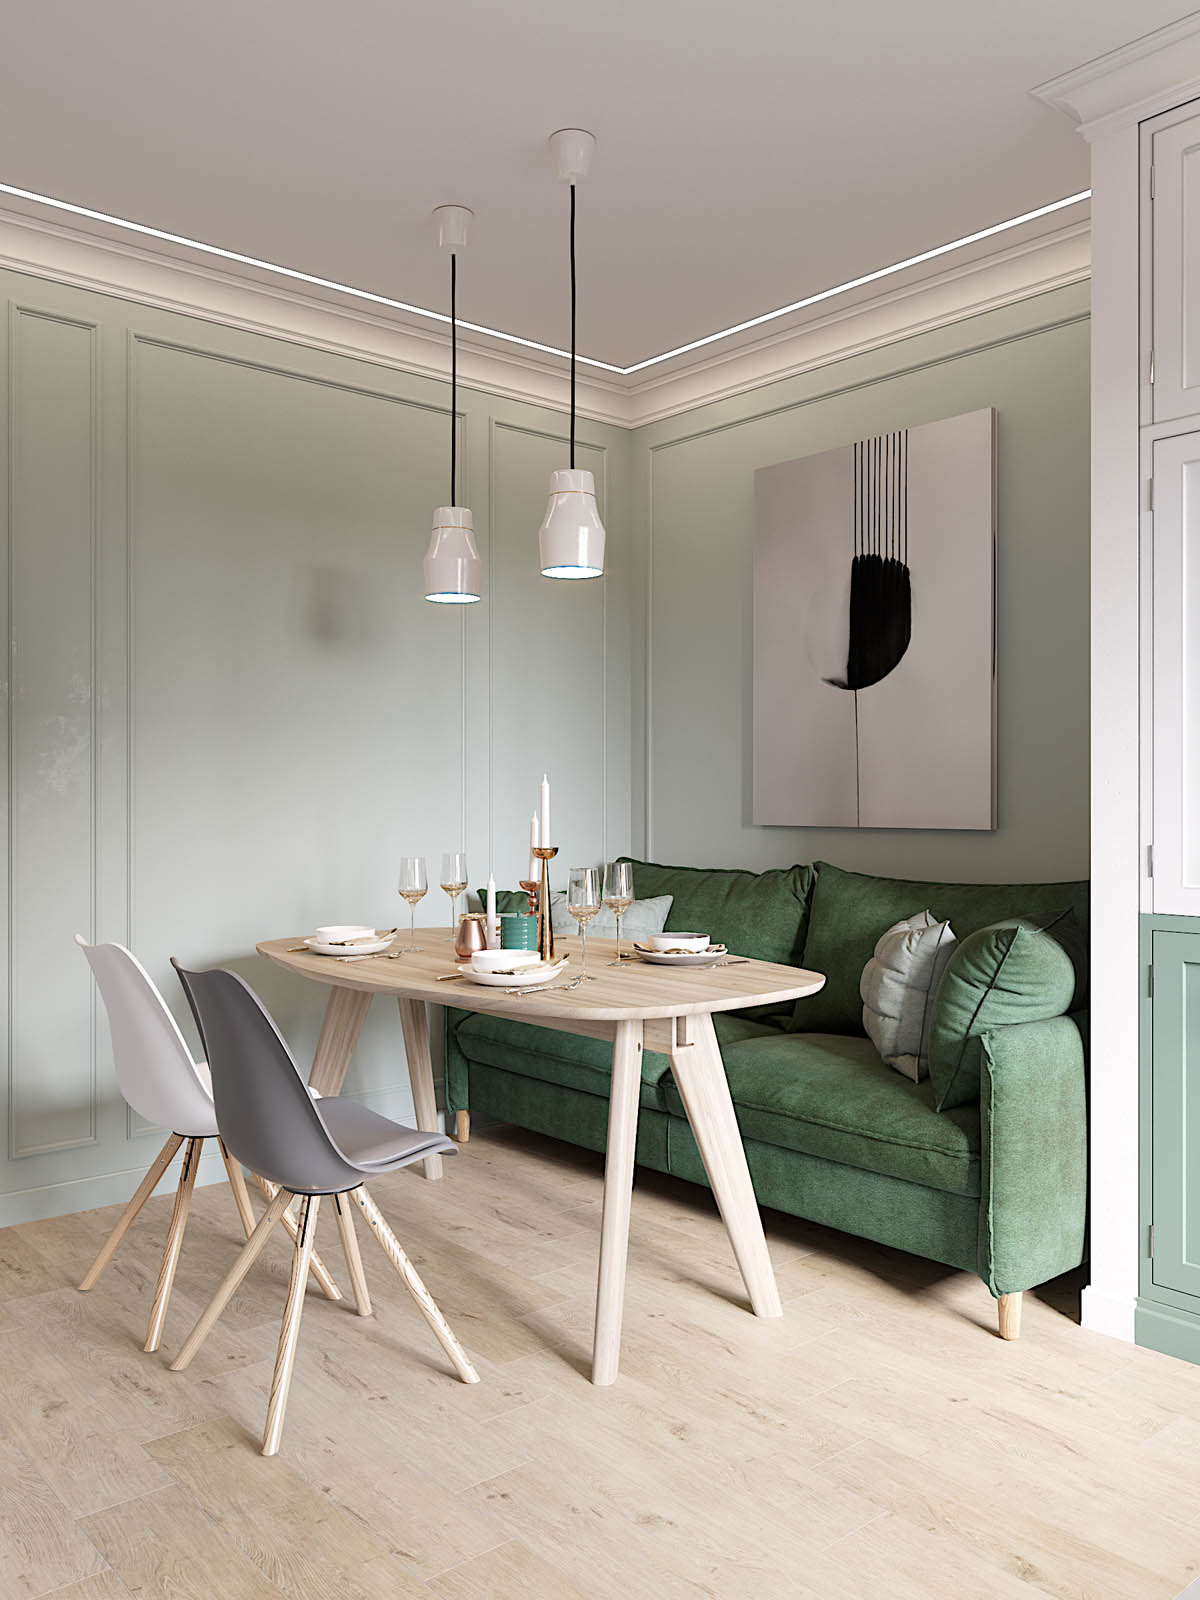 Sophisticated Scandinavian Style Home With Green Decor :: Cool Chic Style Fashion